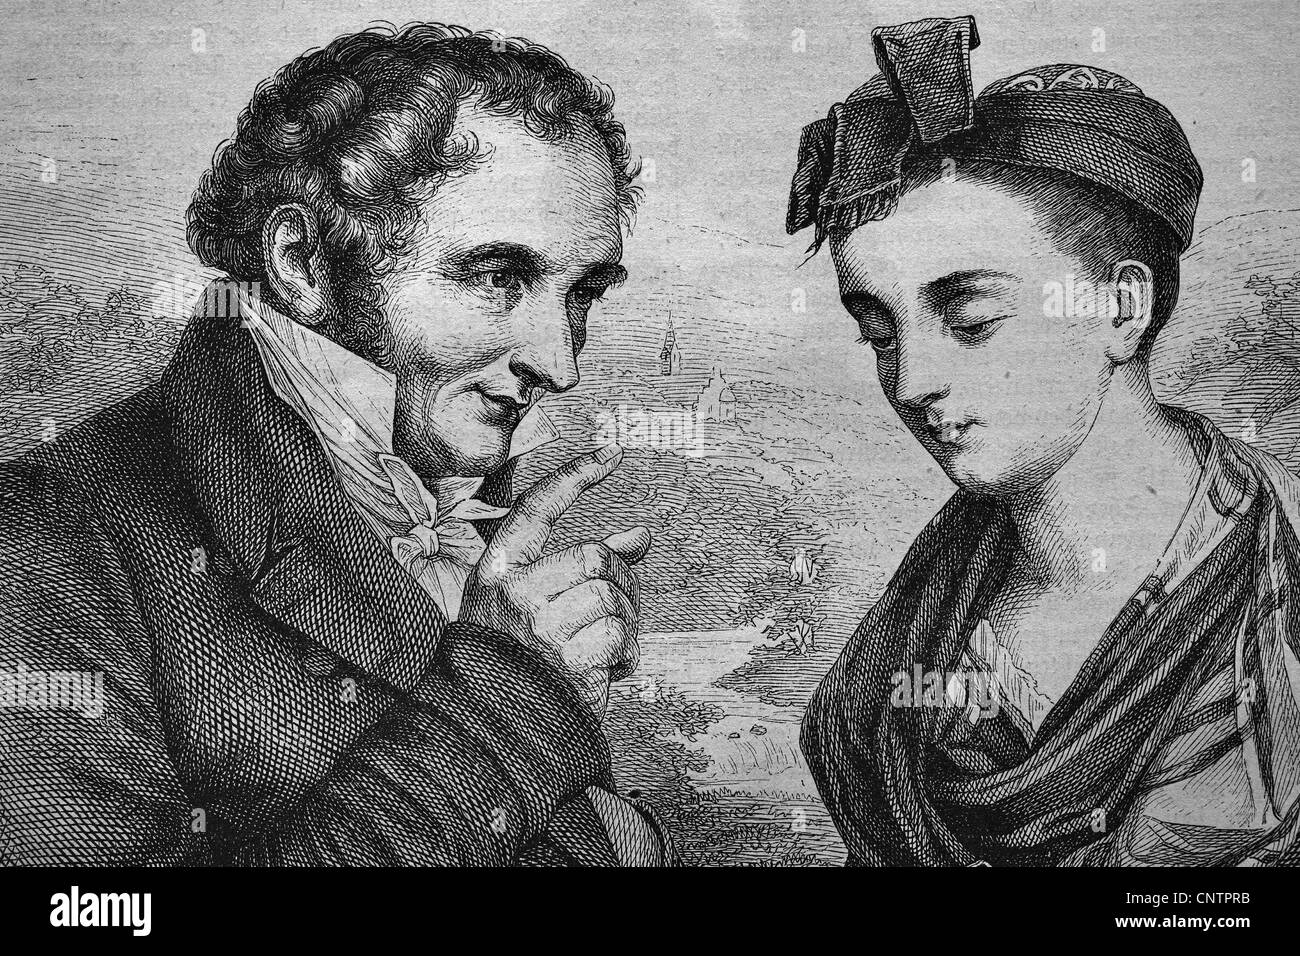 Johann Peter Hebel, 1760 - 1826, poet, and Breneli, actually Veronica Rohre, 1779 - 1869, probably his mistress, Stock Photo